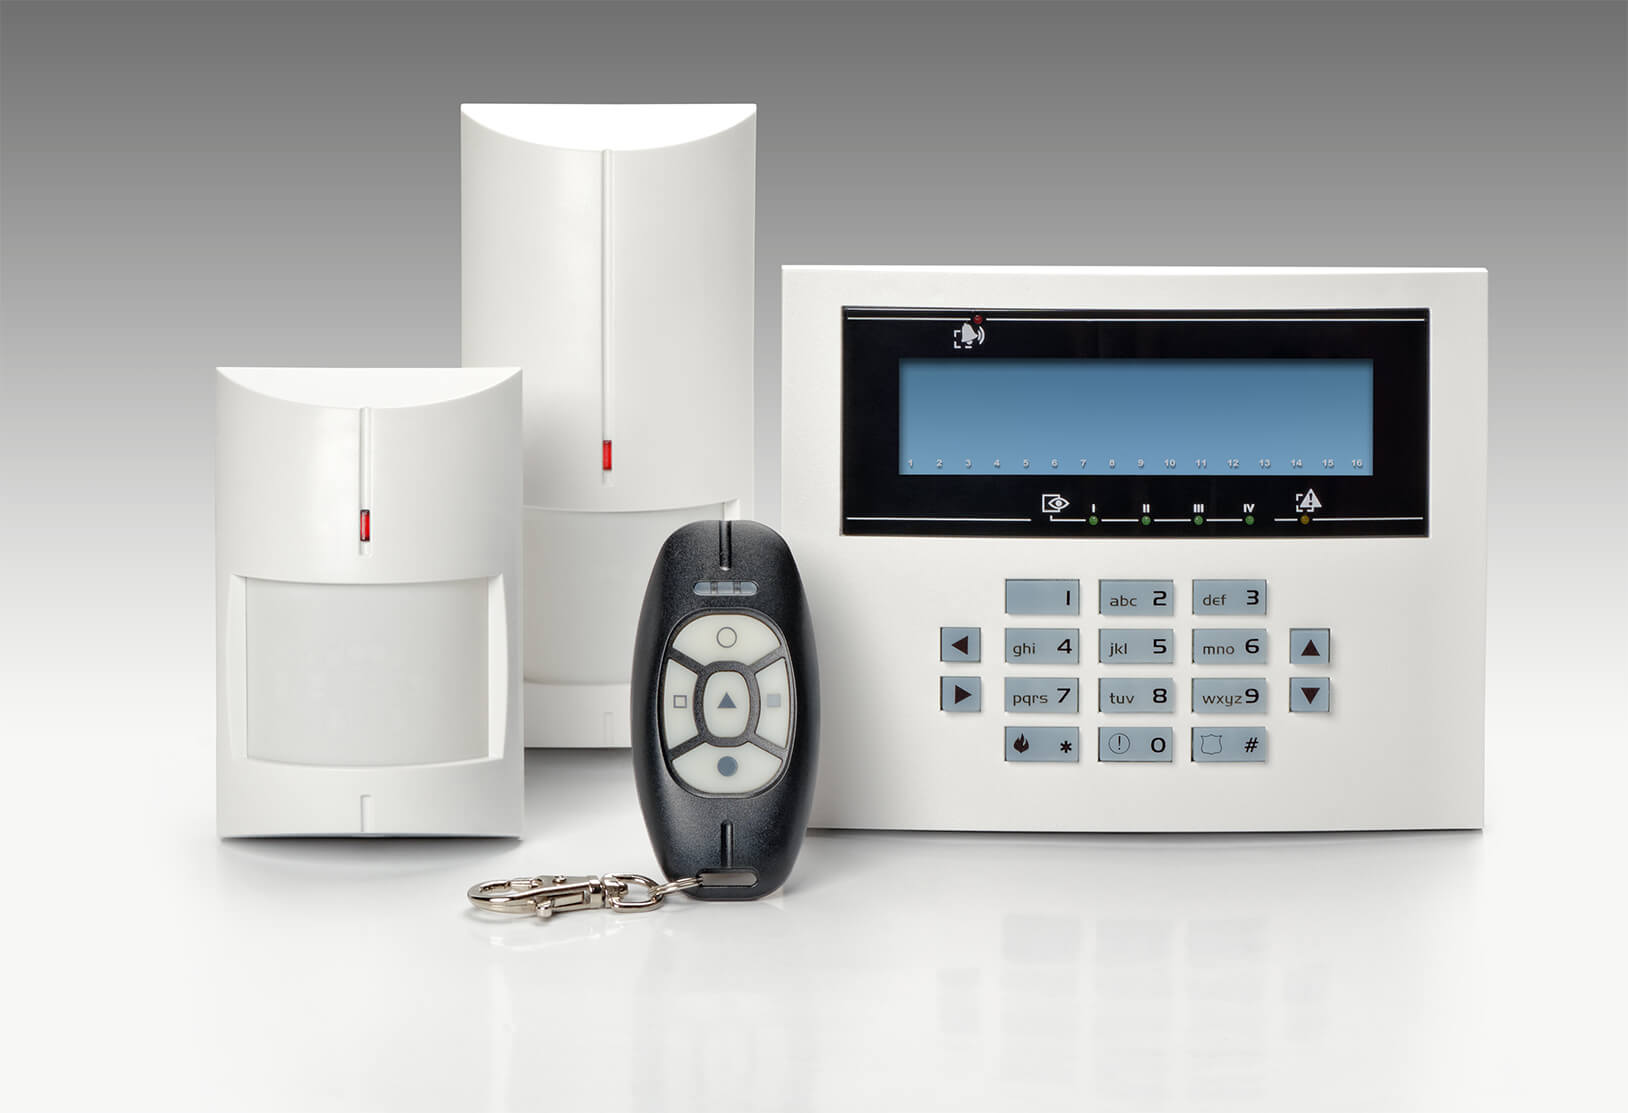 Commercial Burglar Alarms For Business in Croydon SE19  - Local Croydon SE19 burglar alarm company.Call 02078872244 - Dedicated to Safety & Security. Companies, shops and homes ..